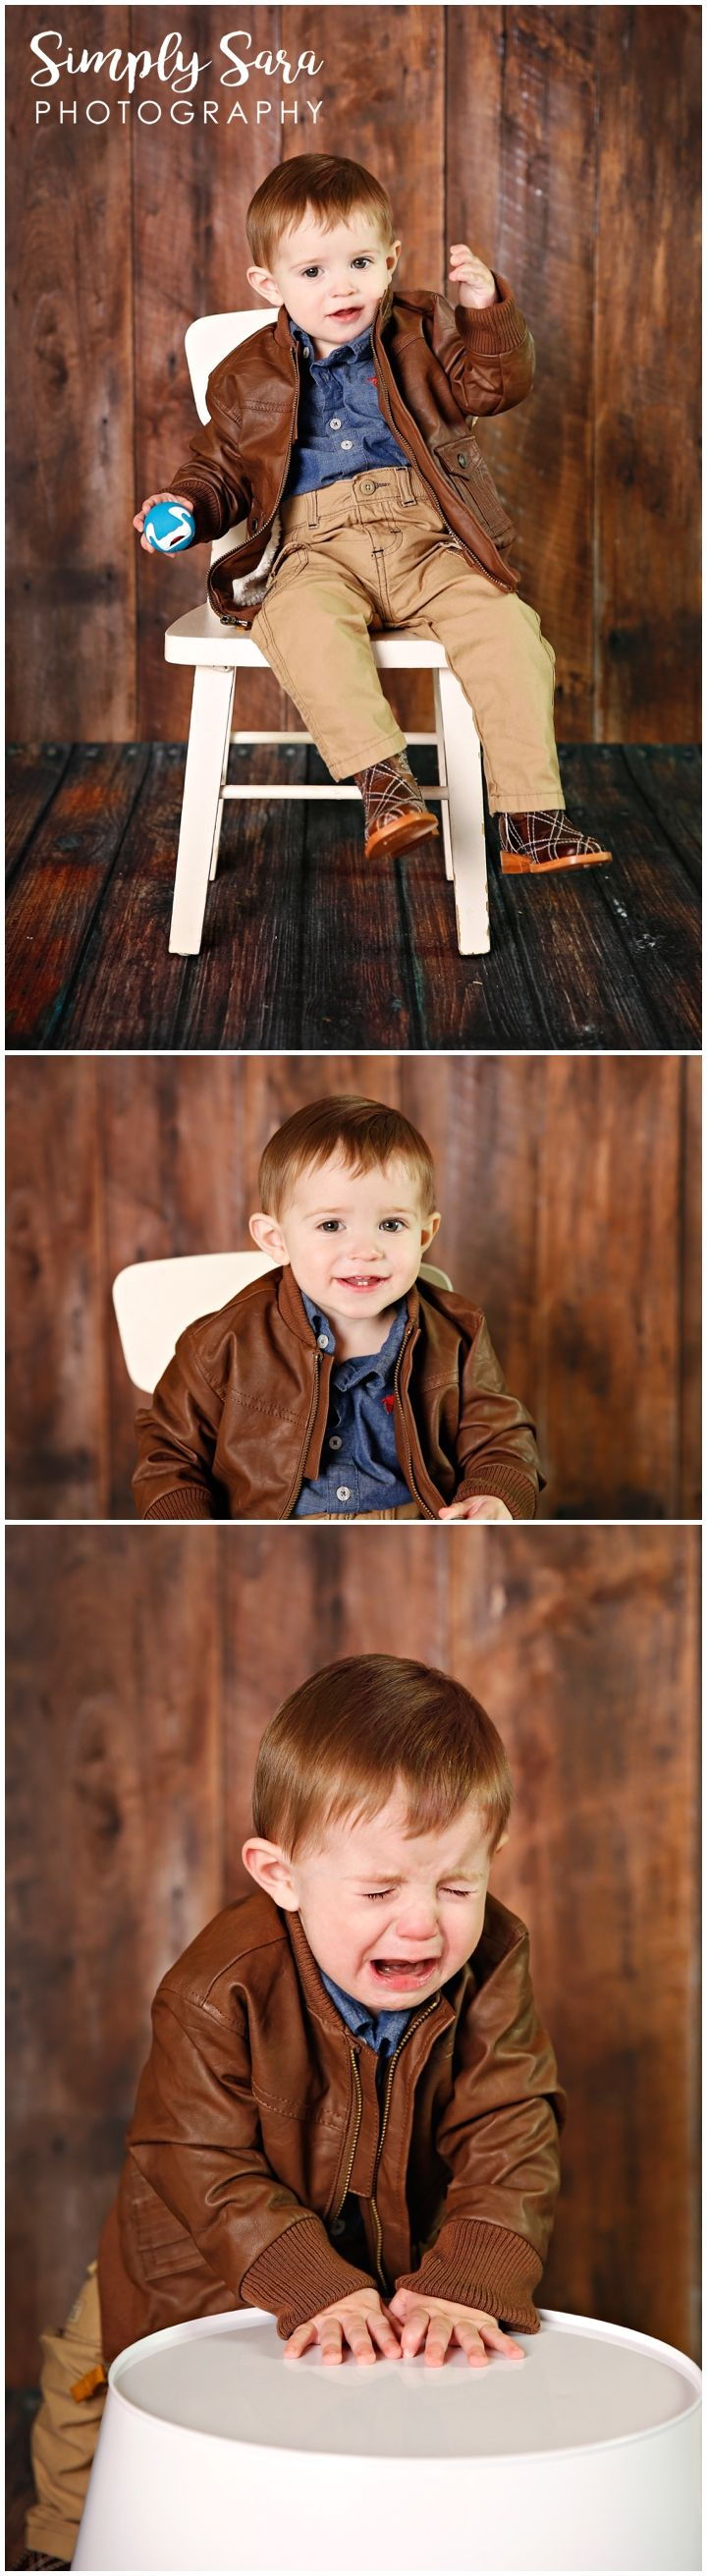 1 Year Old Boy Photo Shoot Ideas & Poses